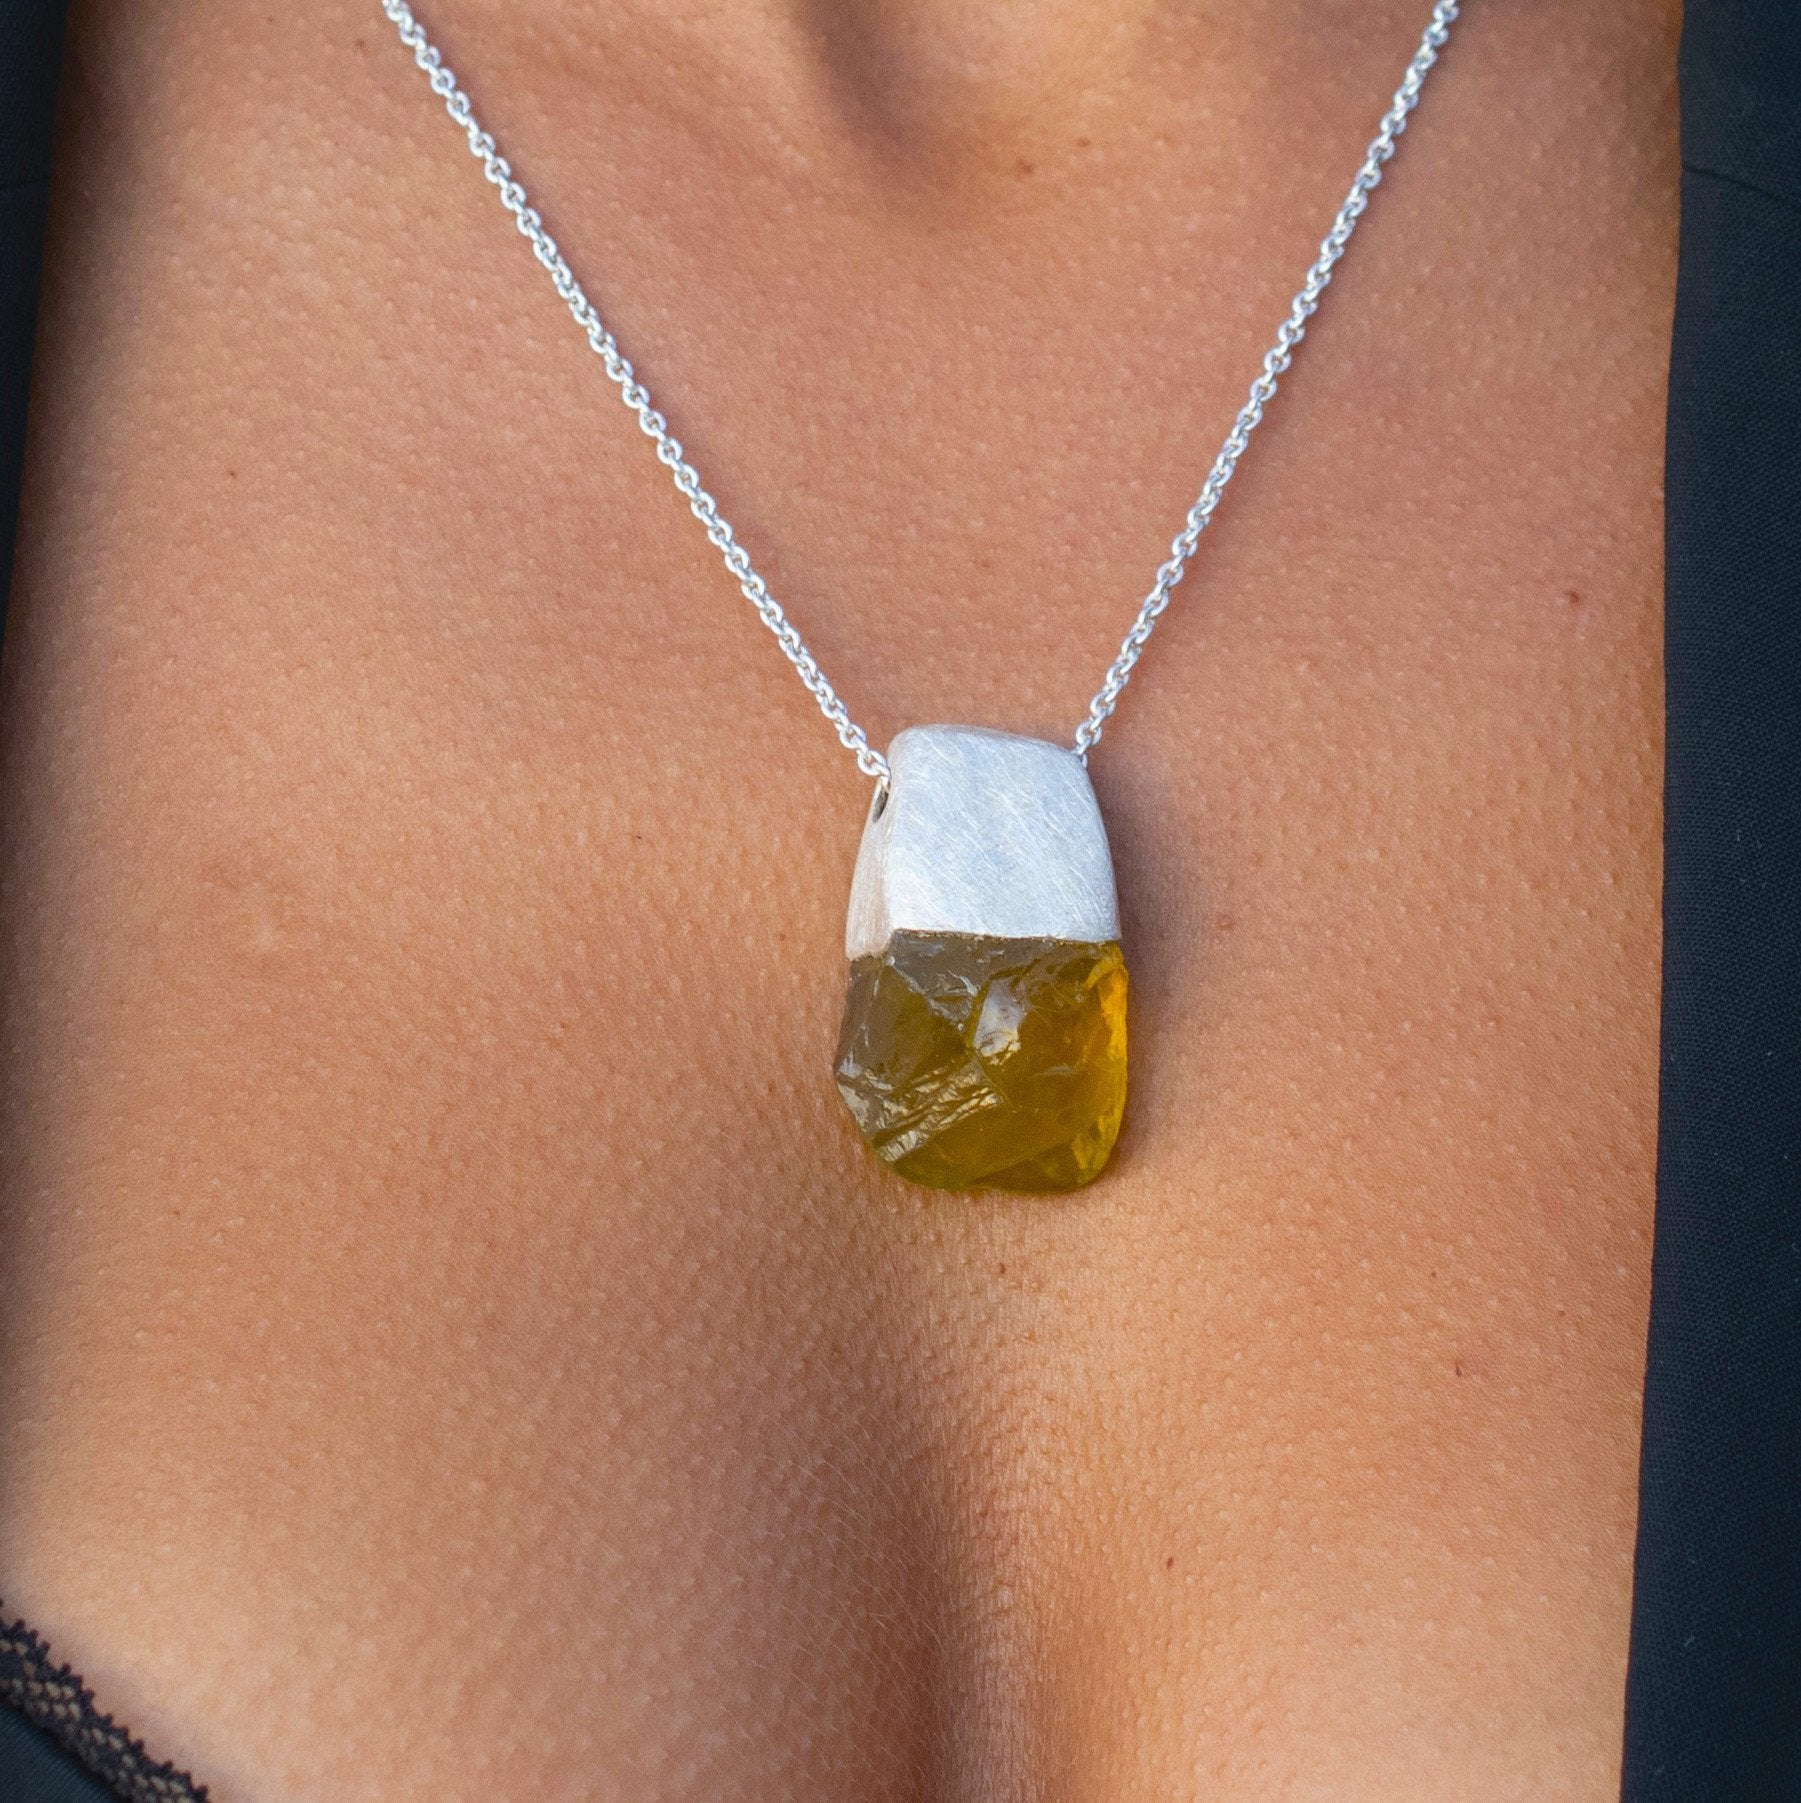 Magnum Lemon Quartz Pendant - One-of-a-kind